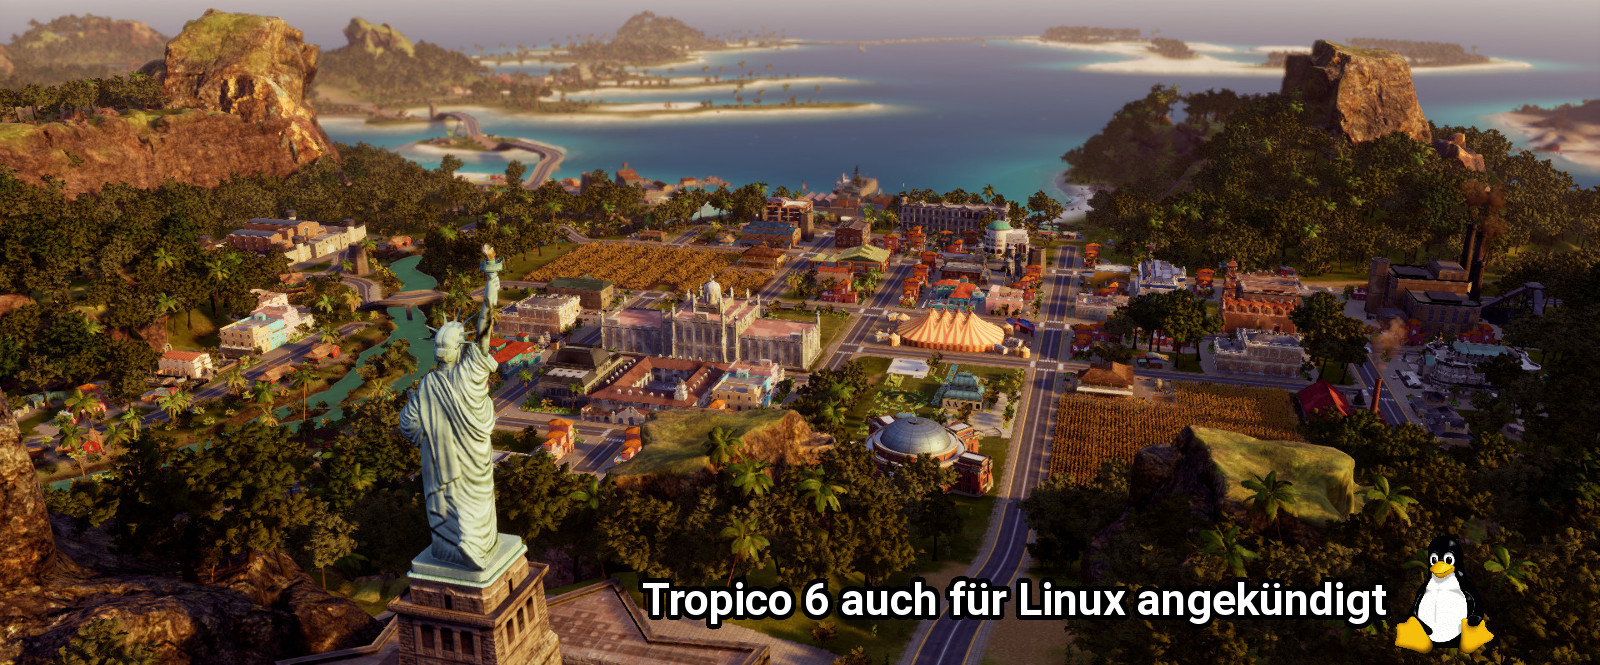 https://www.holarse-linuxgaming.de/sites/default/files/2017-06-13-1/tropico6_teaser.jpg